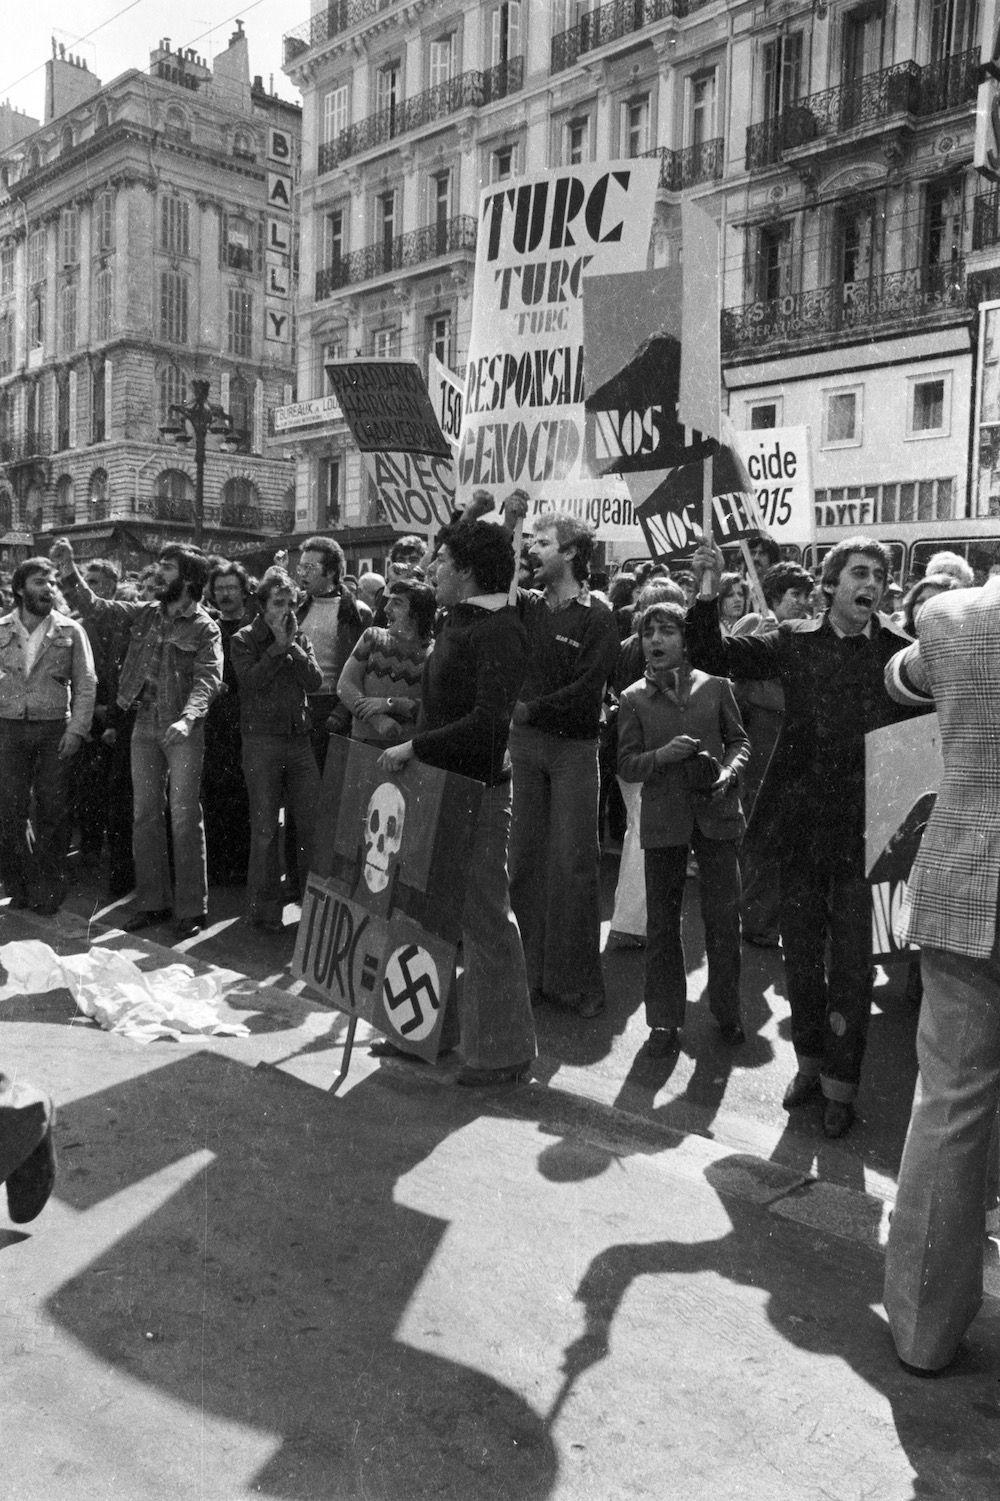 coll-vheloyan-manif-24avril1977-0062 - Year: 1977